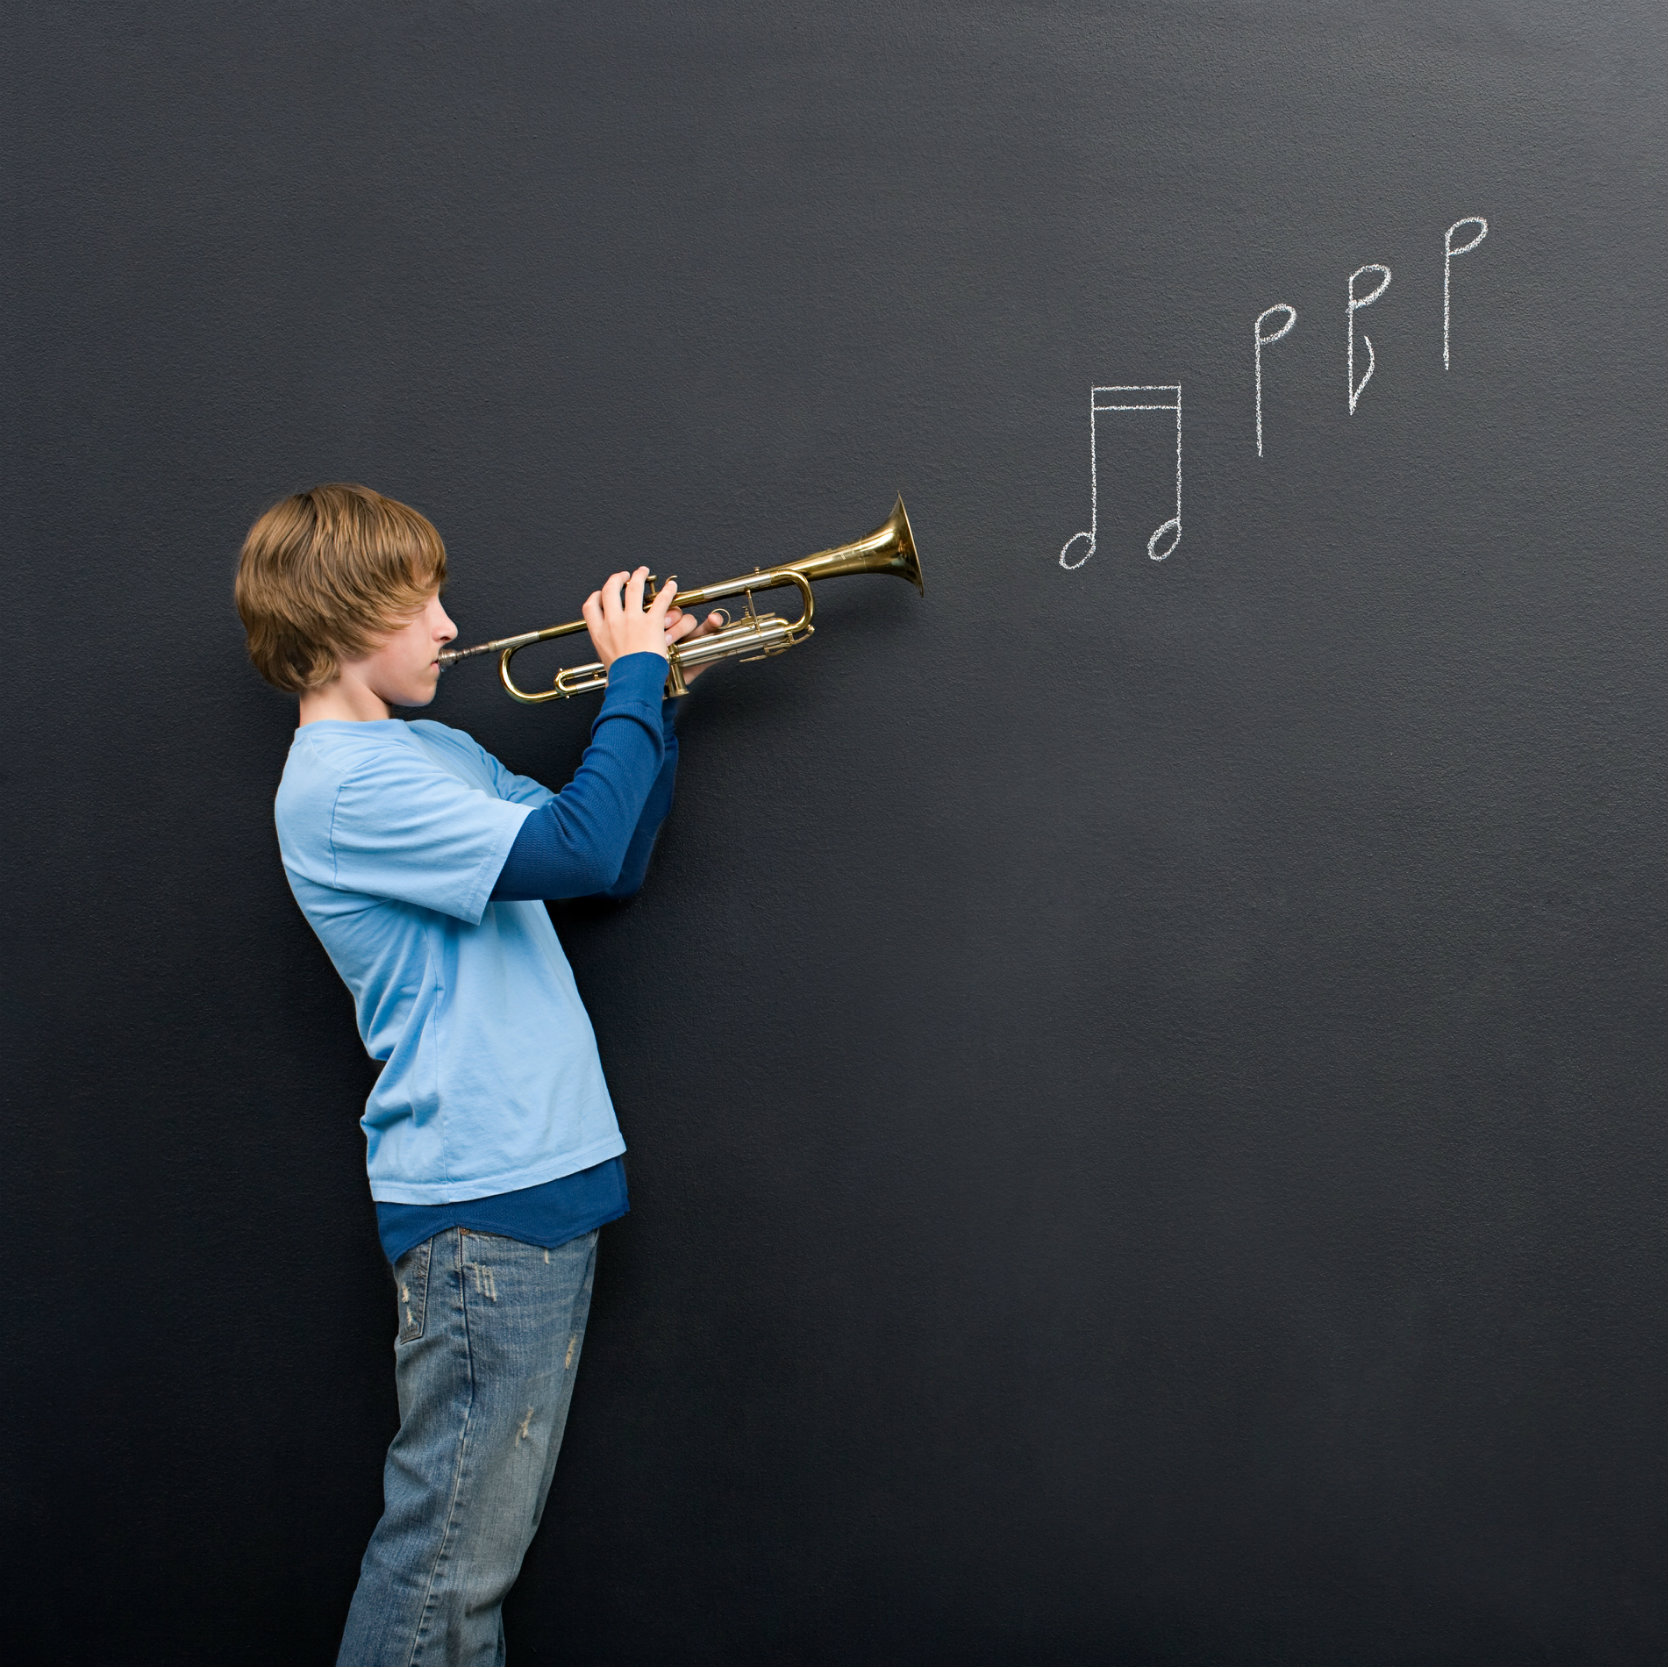 Teaching children how to play instrument